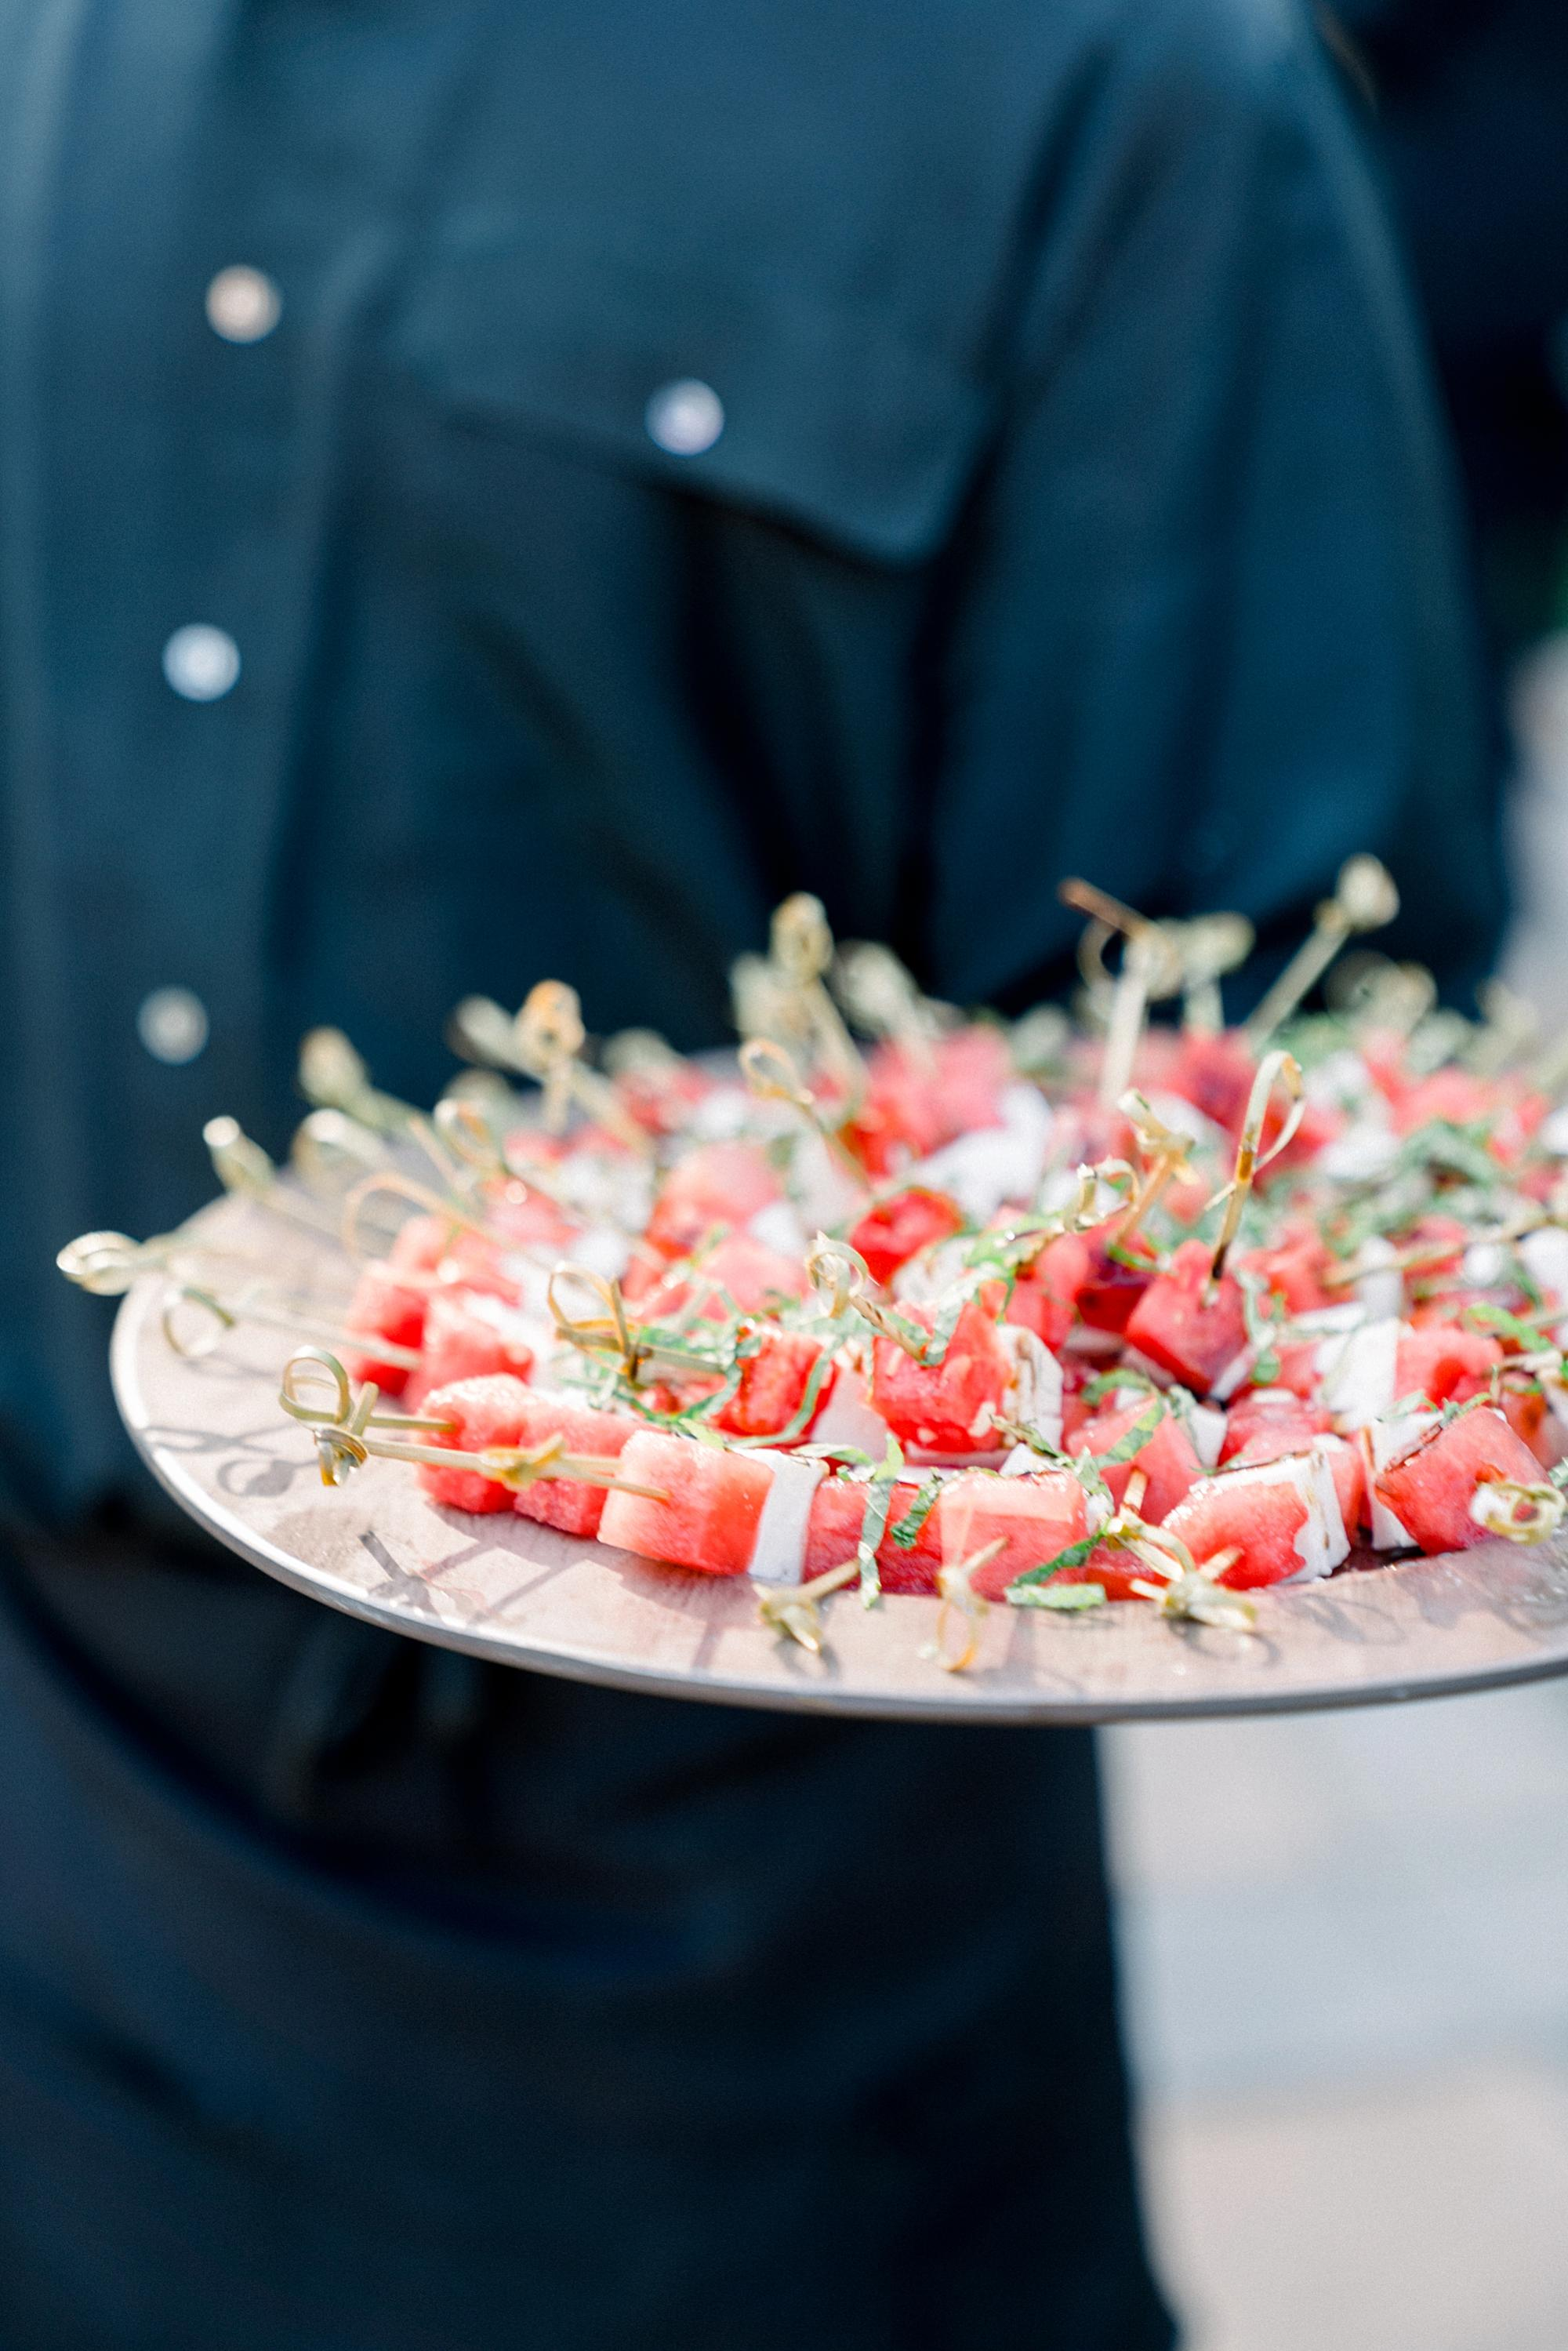 Watermelon Feta Kabobs with Balsamic Glaze and Mint